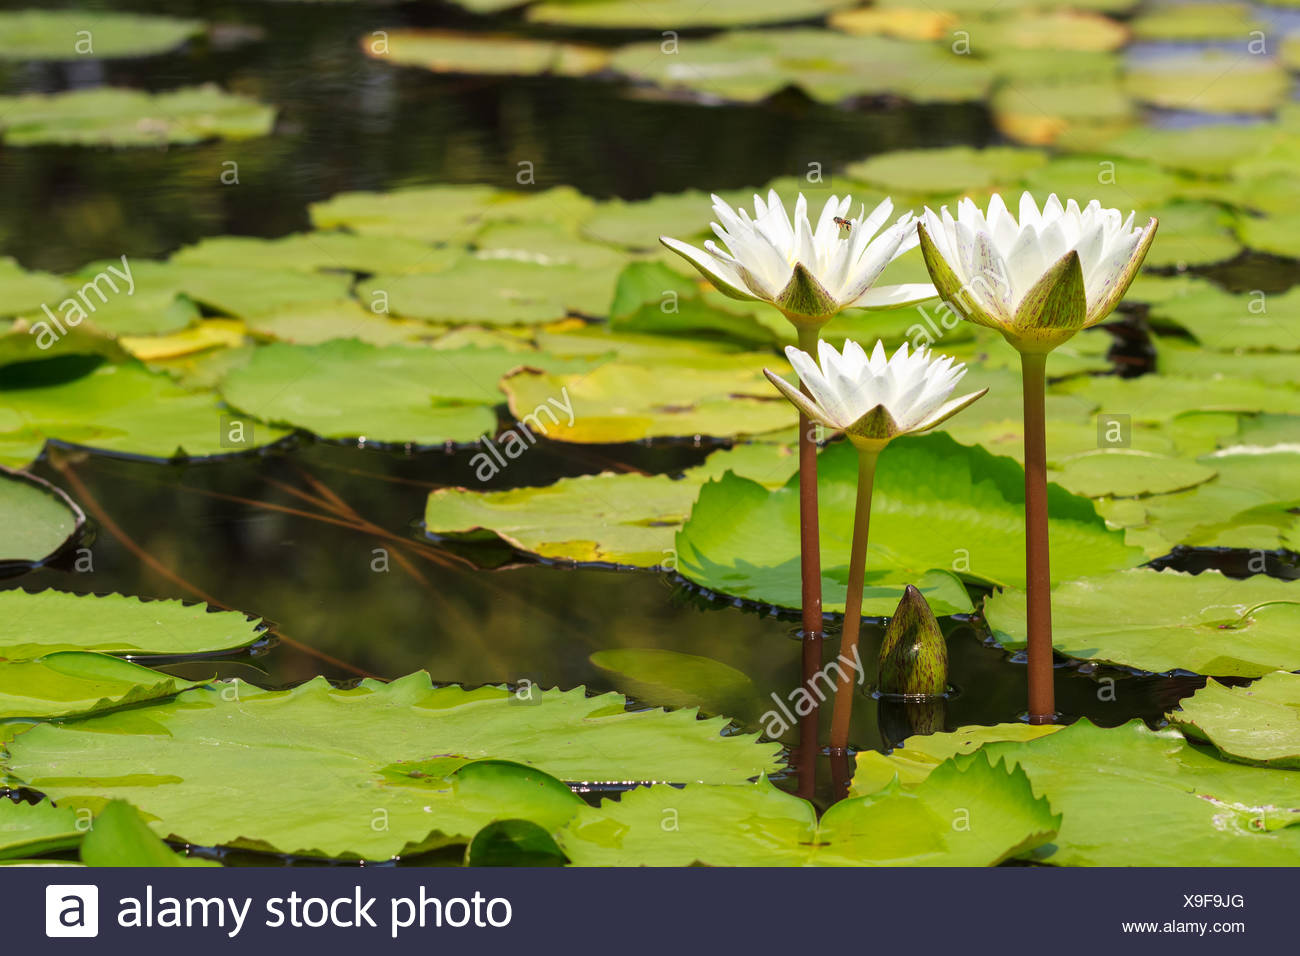 White Water Lily Blooming in Sunshine Day, Tranqui - Stock Image